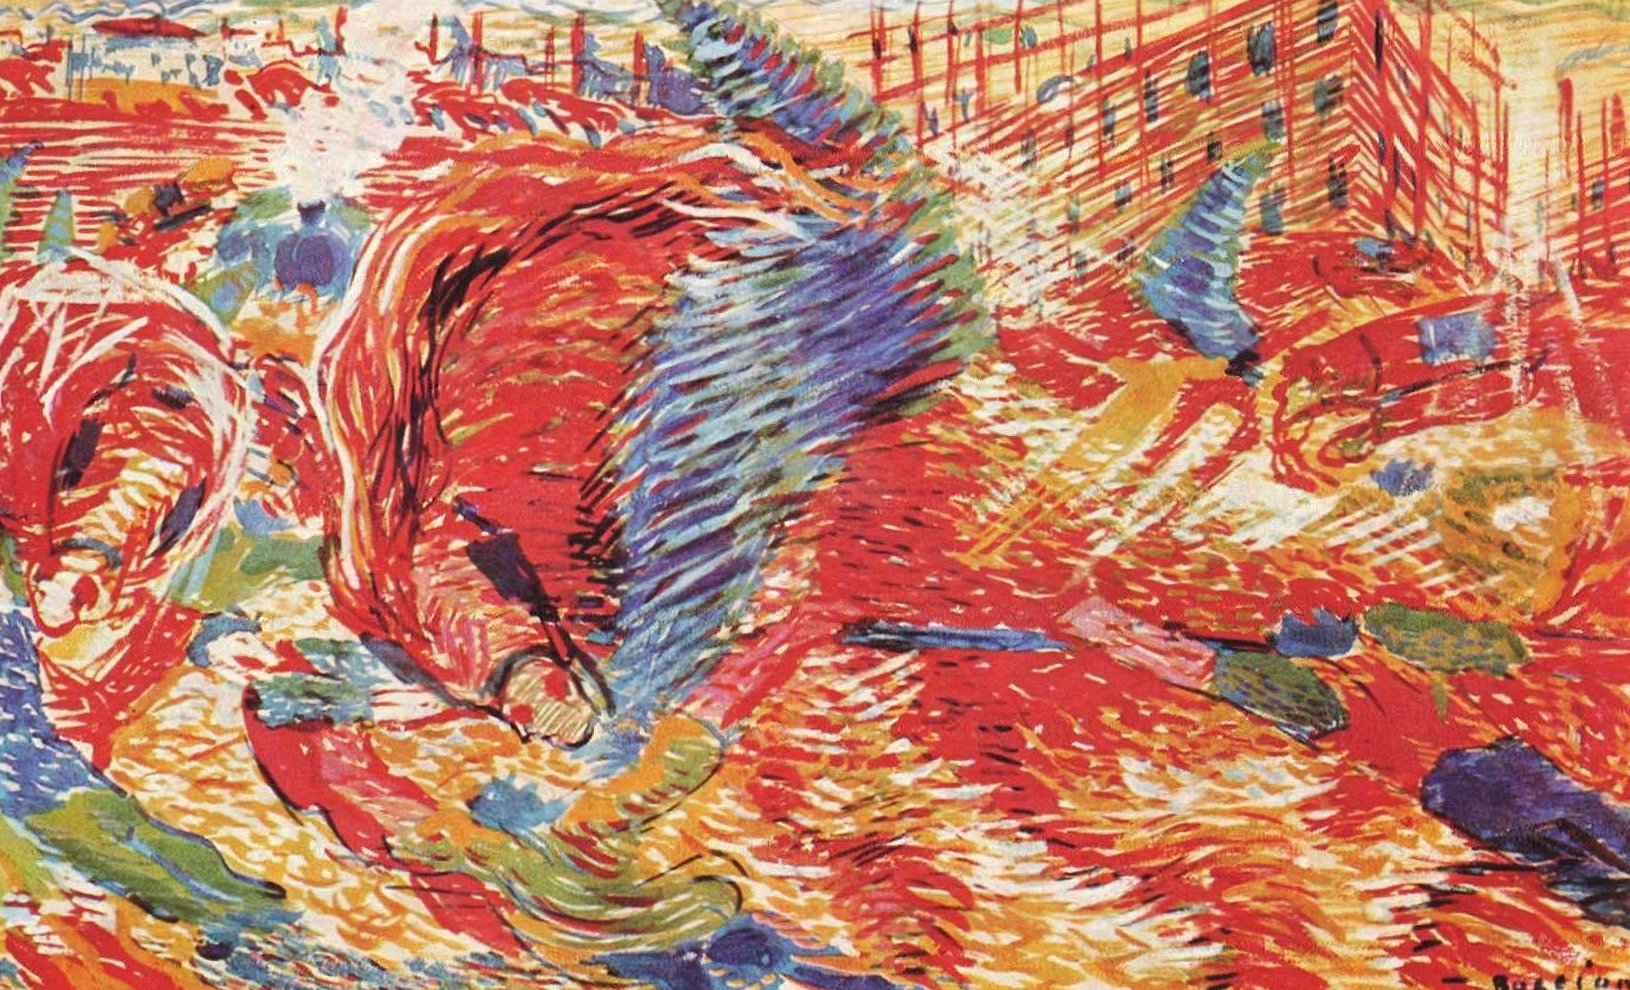 Umberto boccioni the city rises wallpapers HD quality